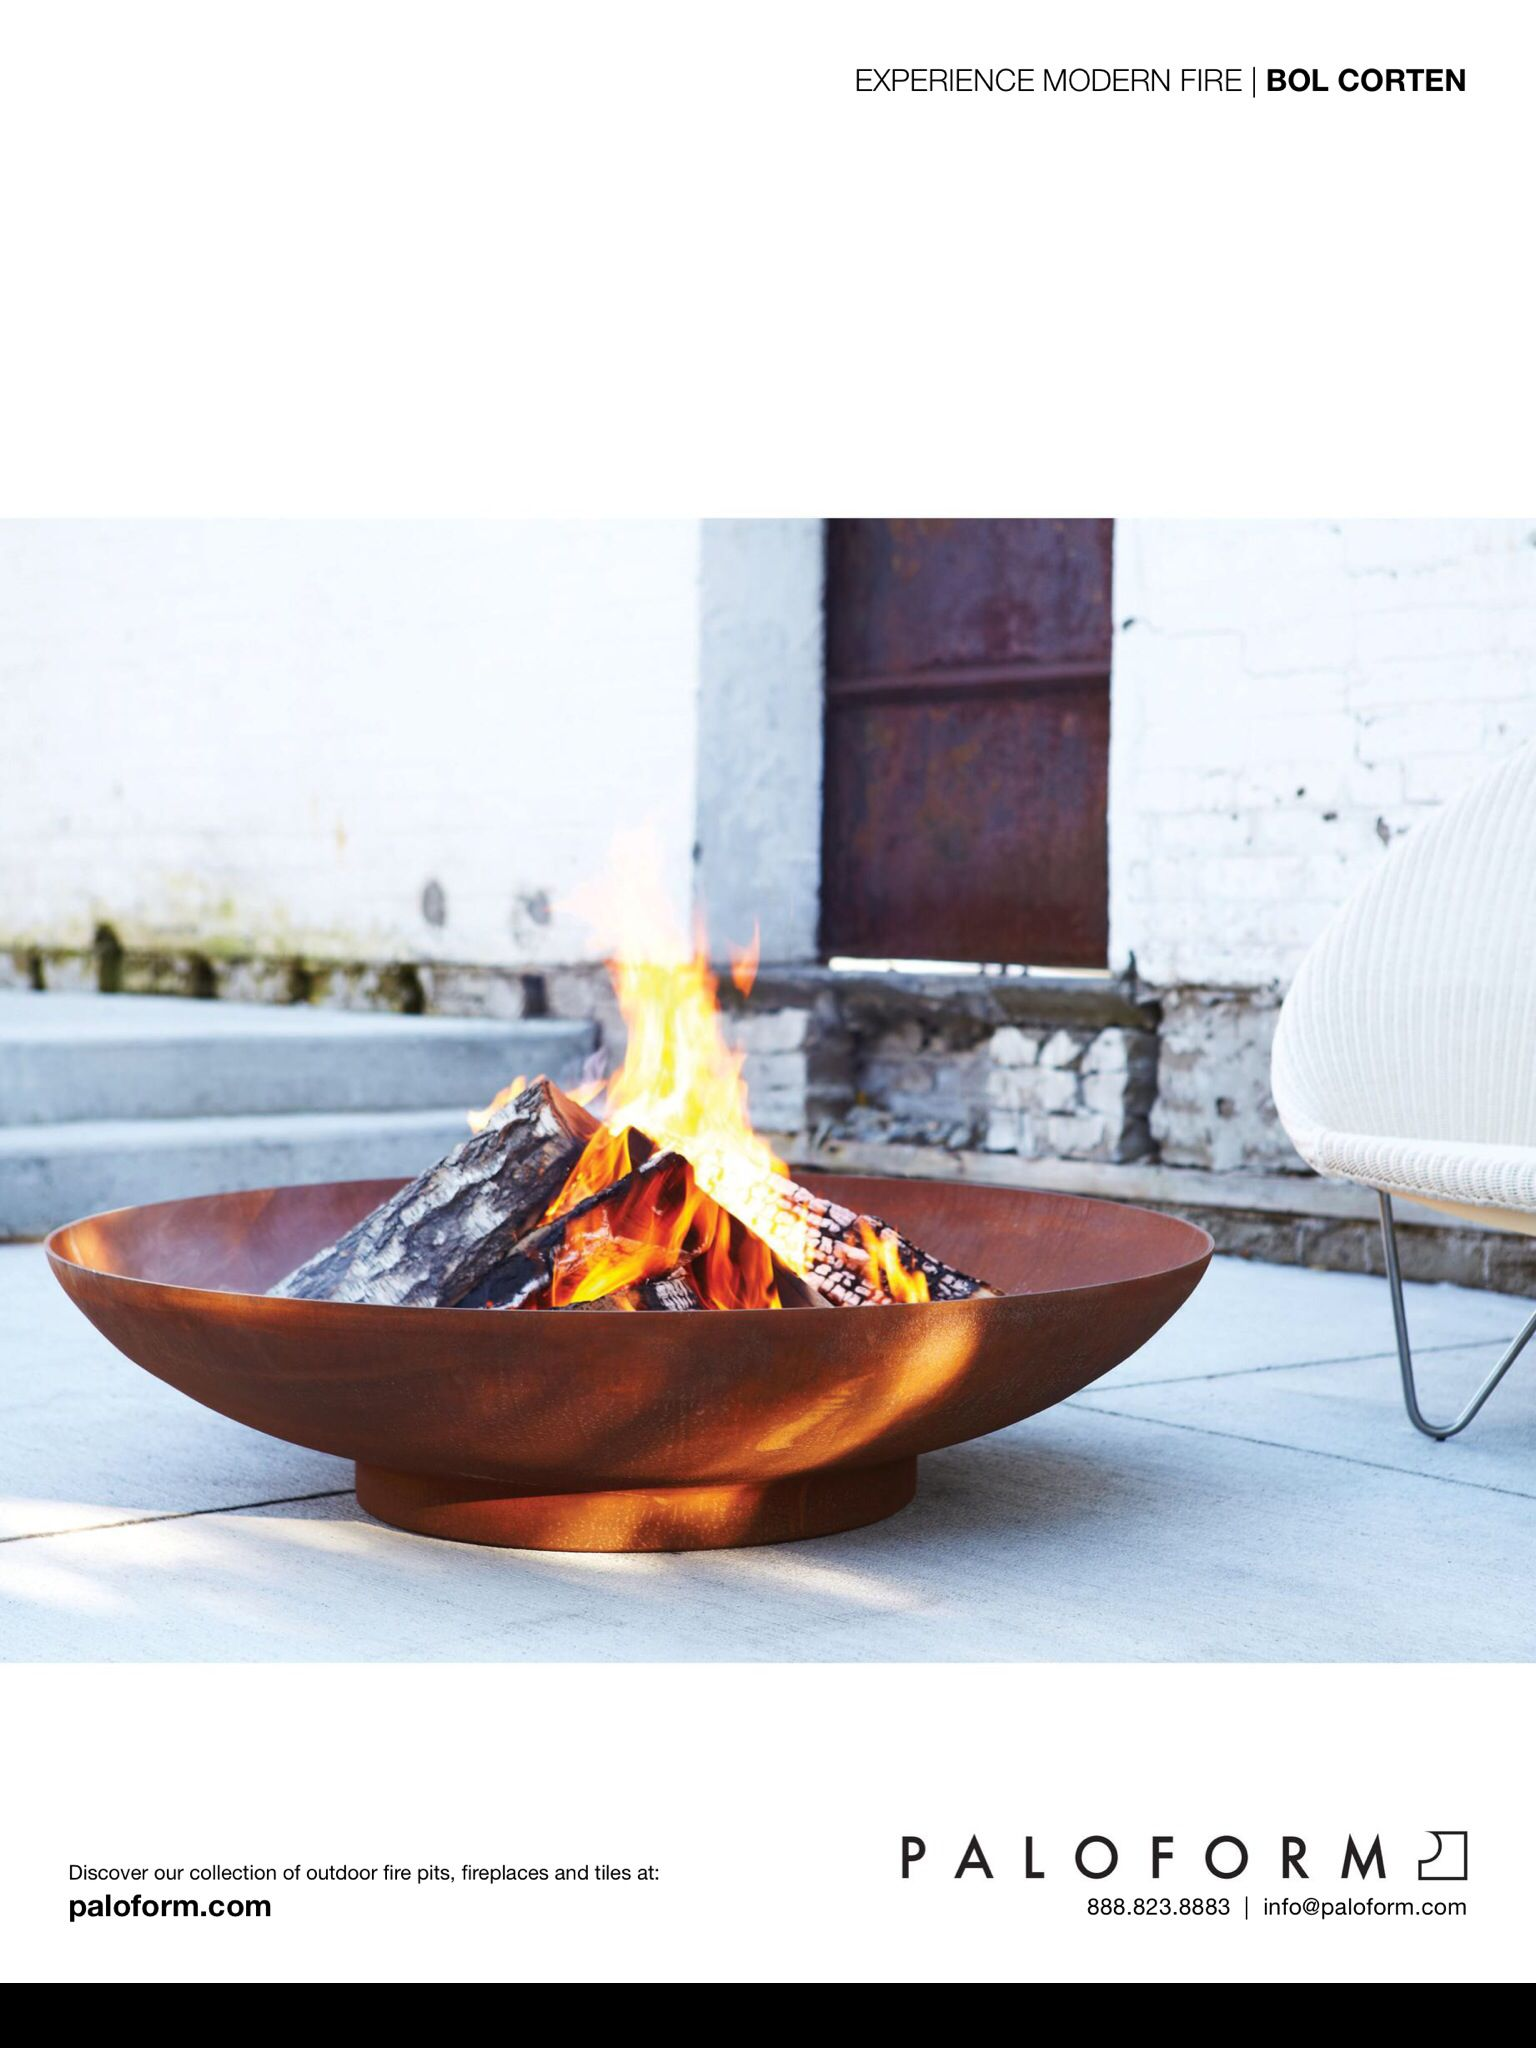 fire pit paloform blcny pinterest fire bowls pergolas and